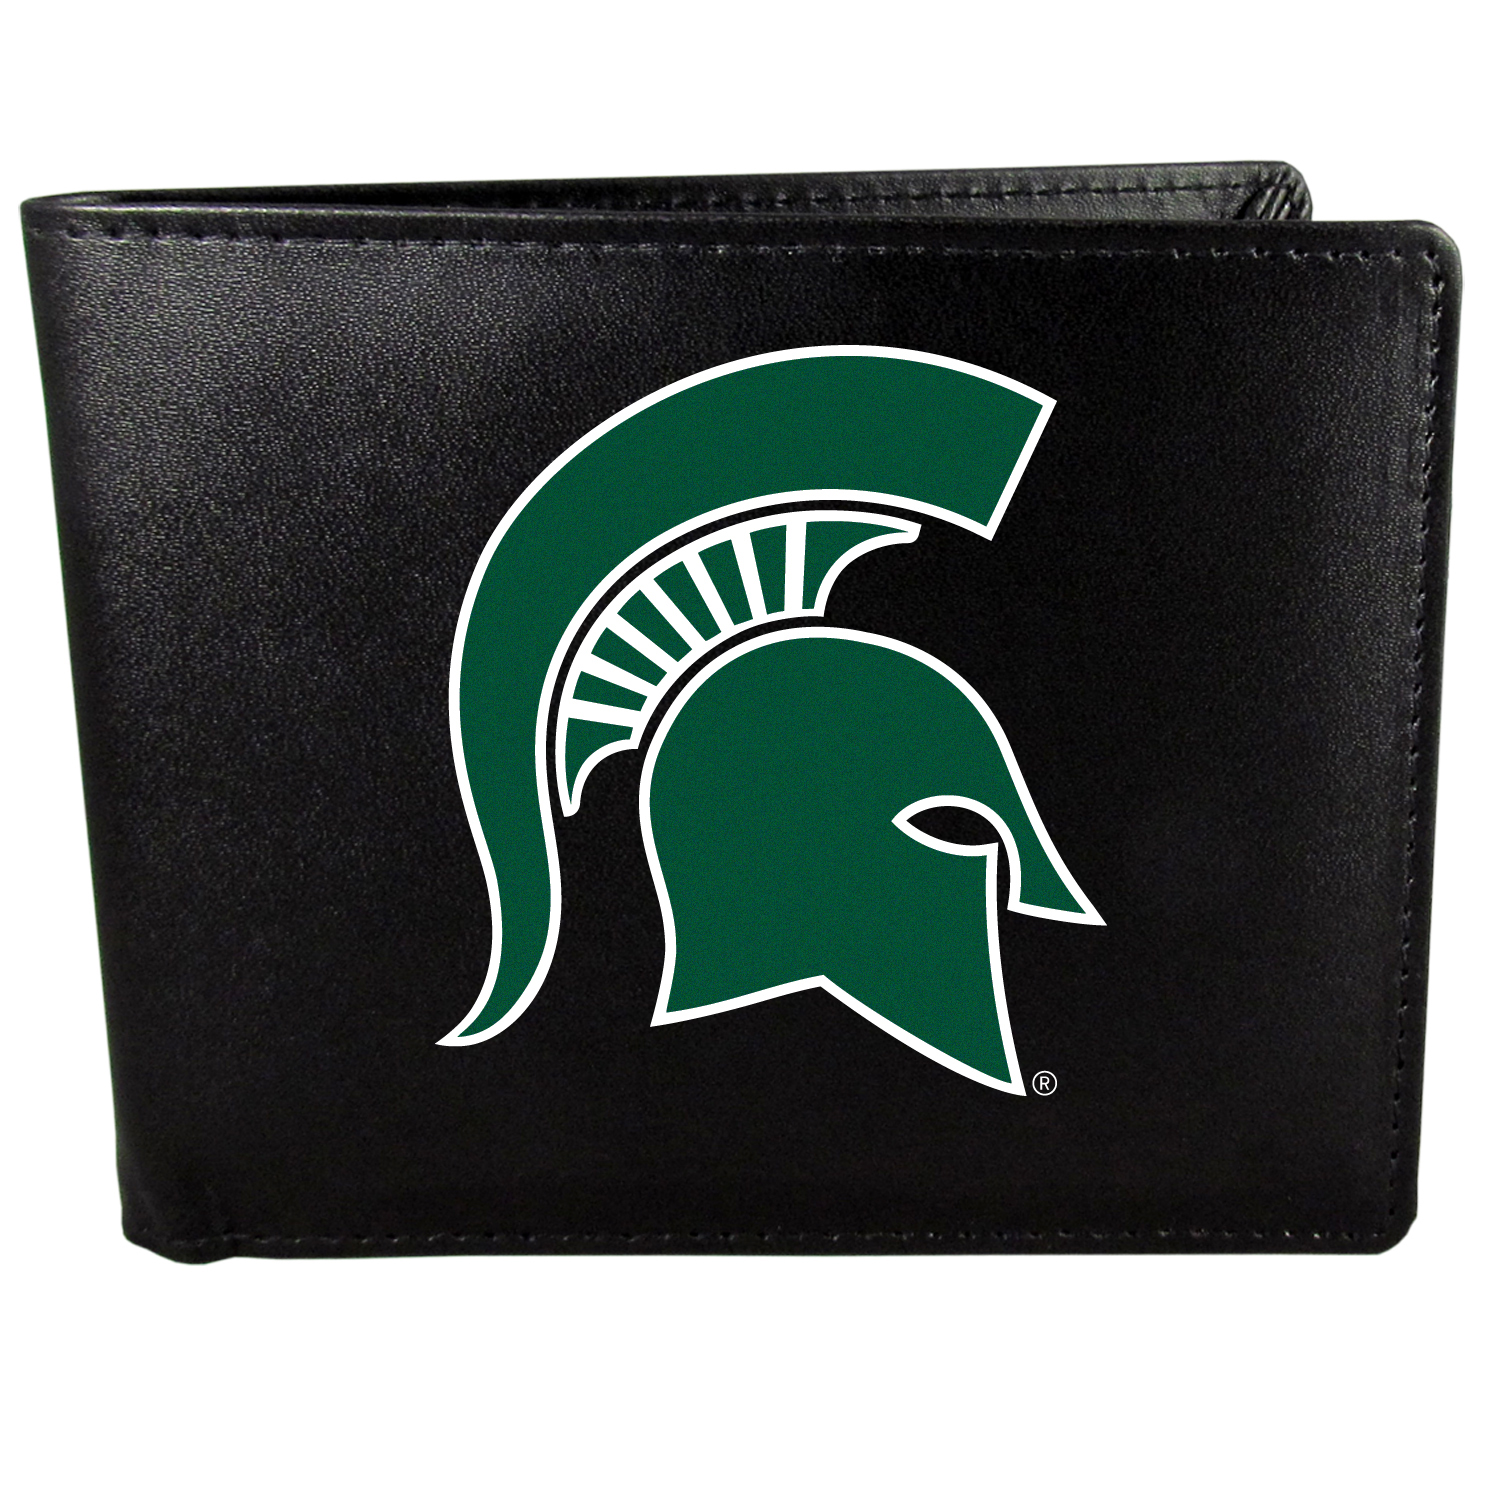 Michigan St. Spartans Bi-fold Wallet Large Logo - Sports fans do not have to sacrifice style with this classic bi-fold wallet that sports the Michigan St. Spartans extra large logo. This men's fashion accessory has a leather grain look and expert craftmanship for a quality wallet at a great price. The wallet features inner credit card slots, windowed ID slot and a large billfold pocket. The front of the wallet features a printed team logo.